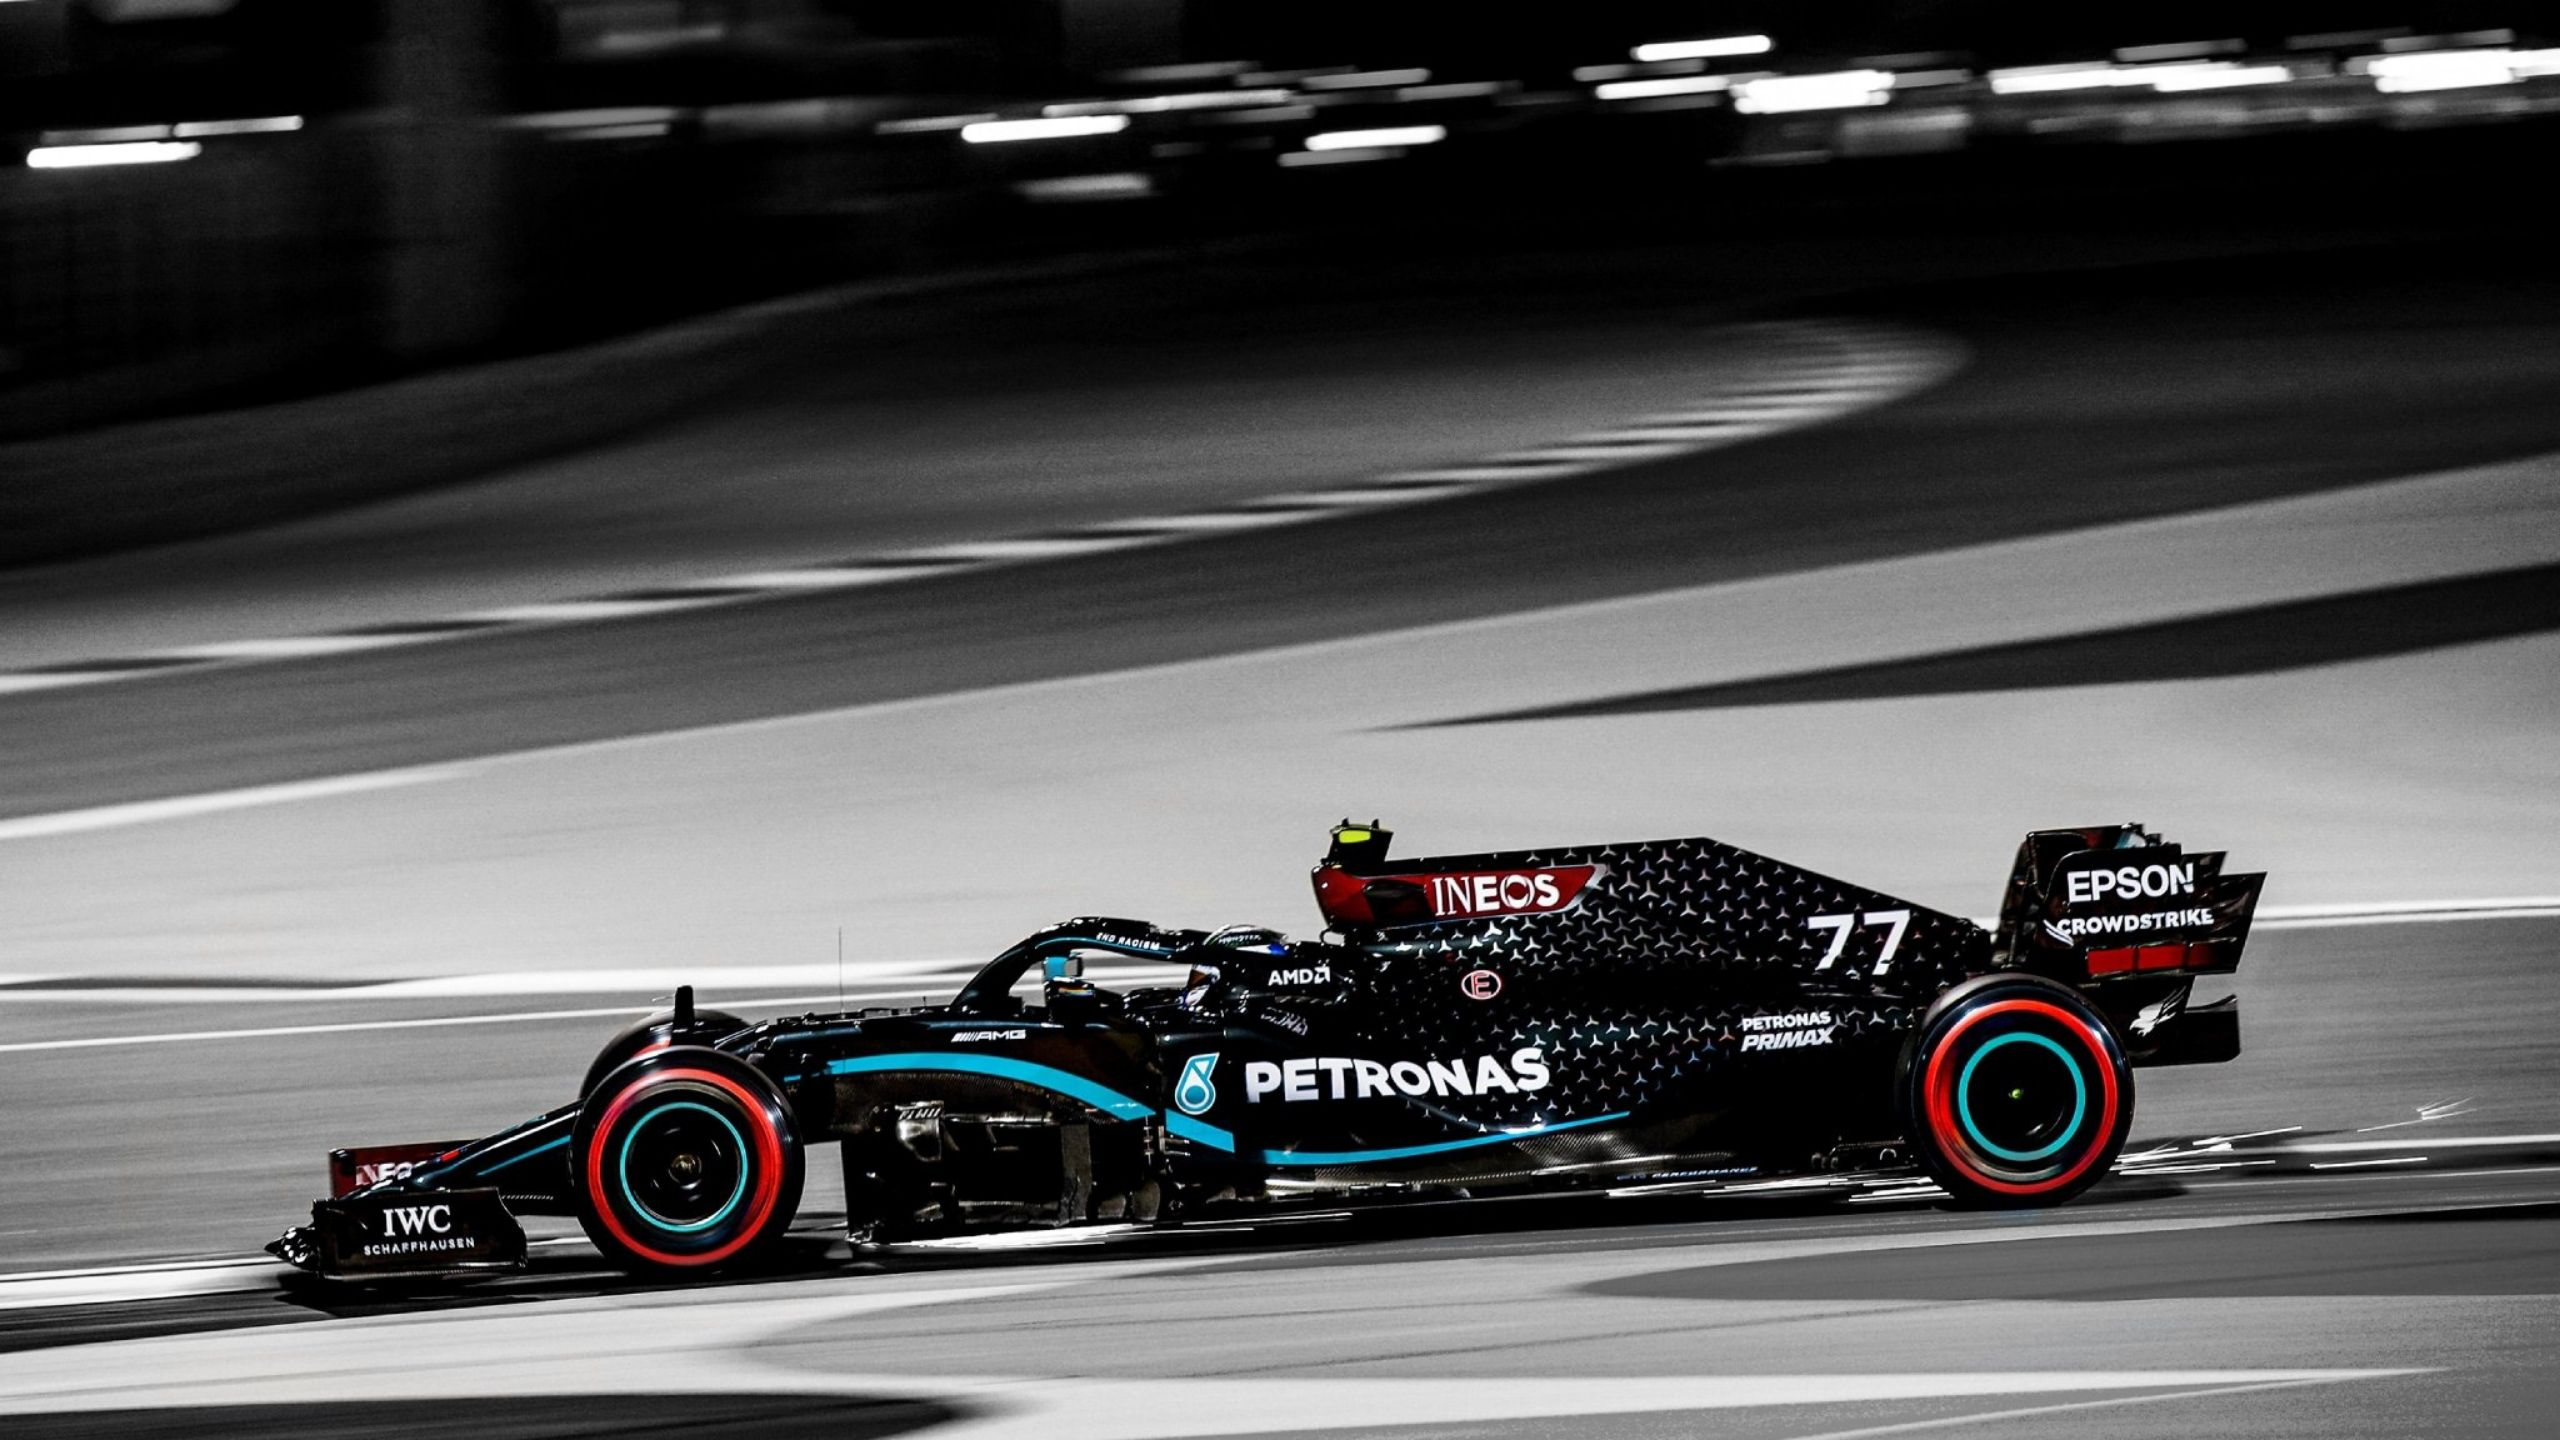 """""""We have a very special surprise this weekend in Abu Dhabi GP for our team members"""" - Mercedes F1 to run a special livery featuring names of all team members in season finale"""